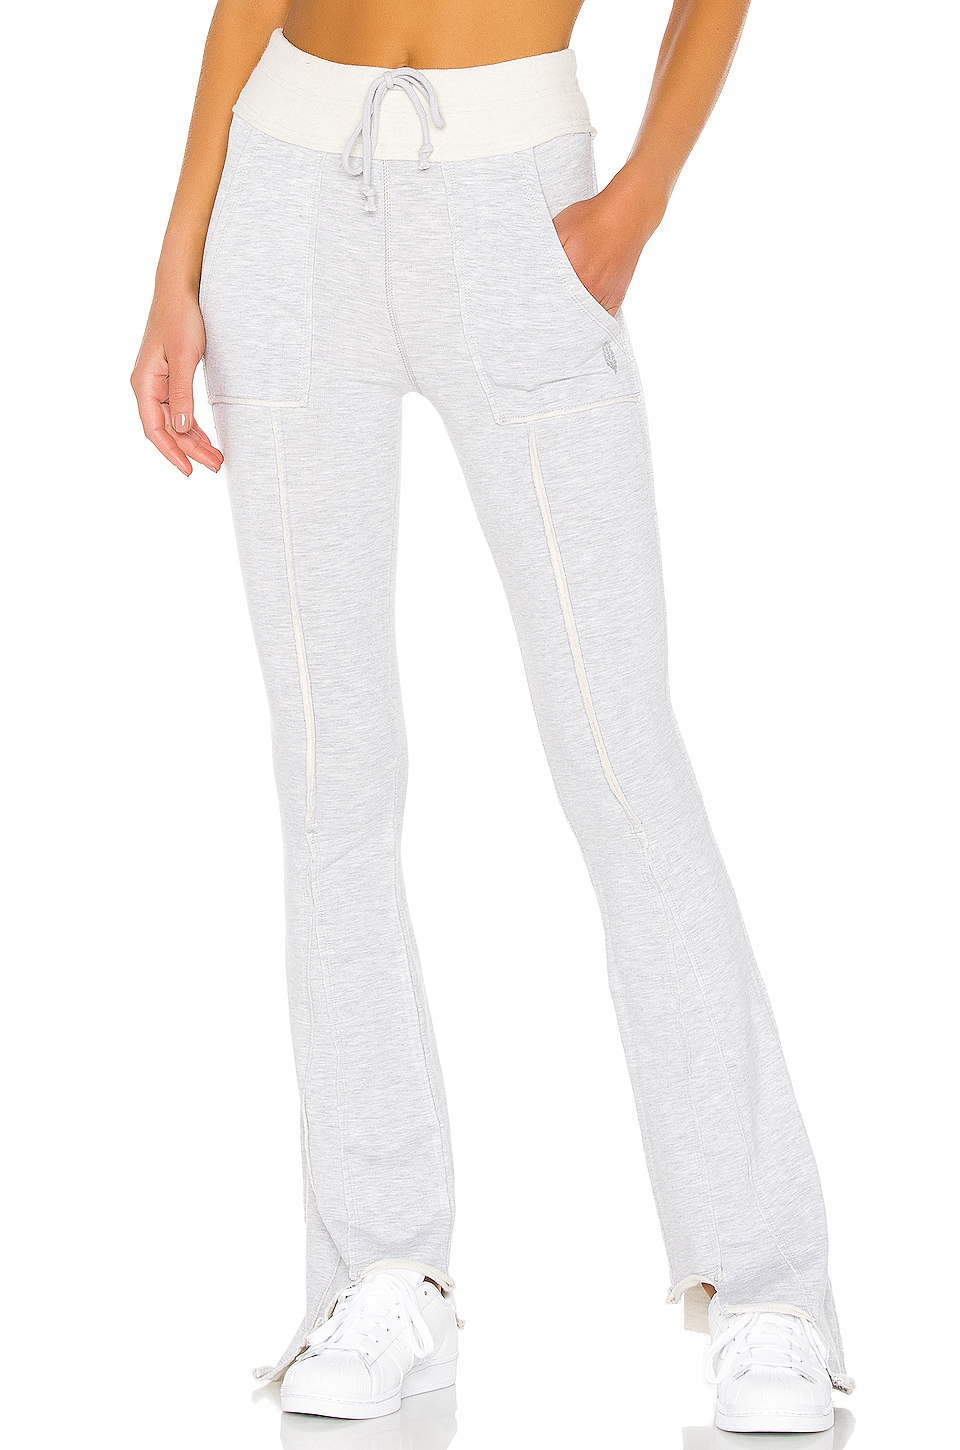 Free People Movement Quick Jab Flare Pant in Grey Combo